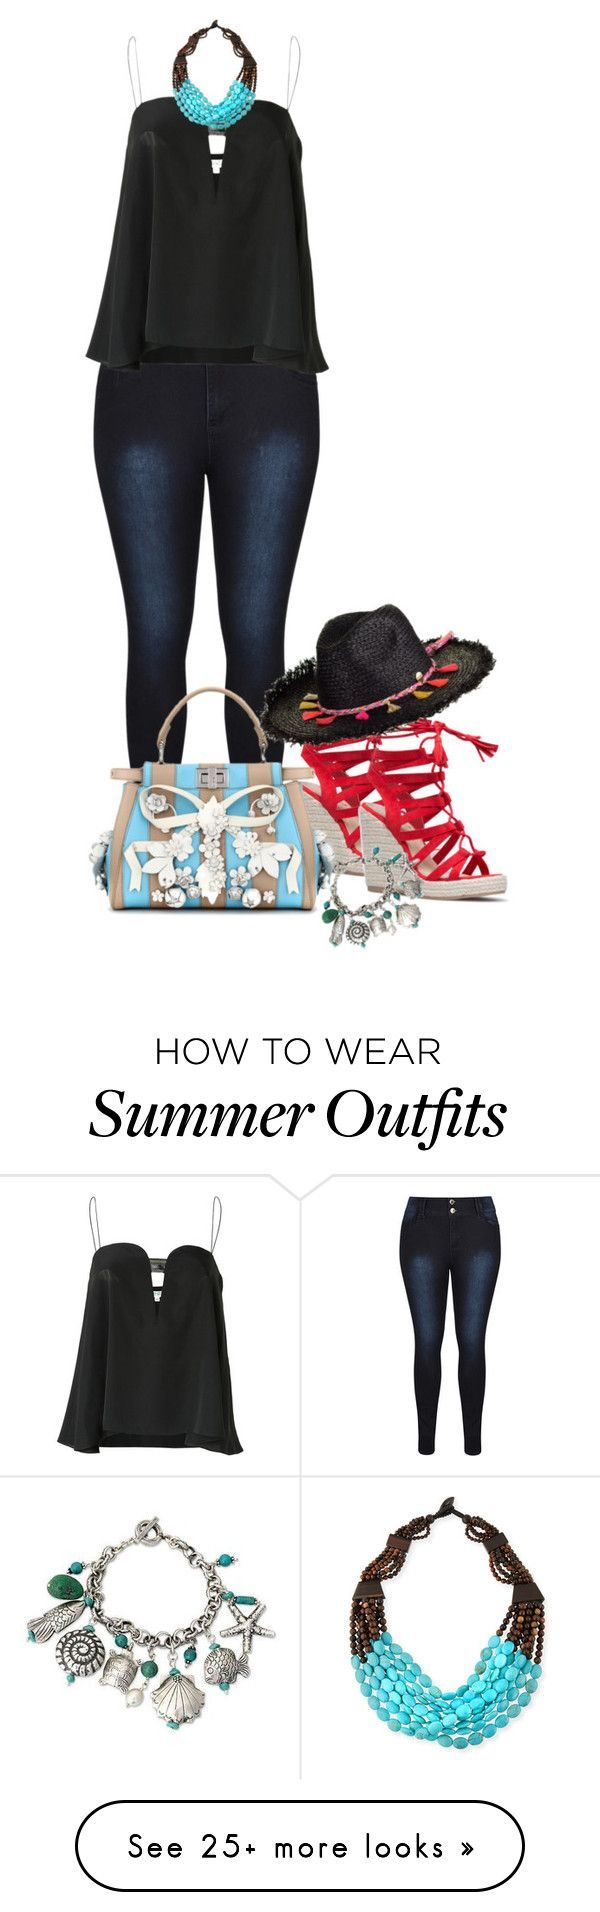 Summer Outfits : Tank & jeans by fiery555 on Polyvore featuring Kenzo Seafolly Viktoria Hayma